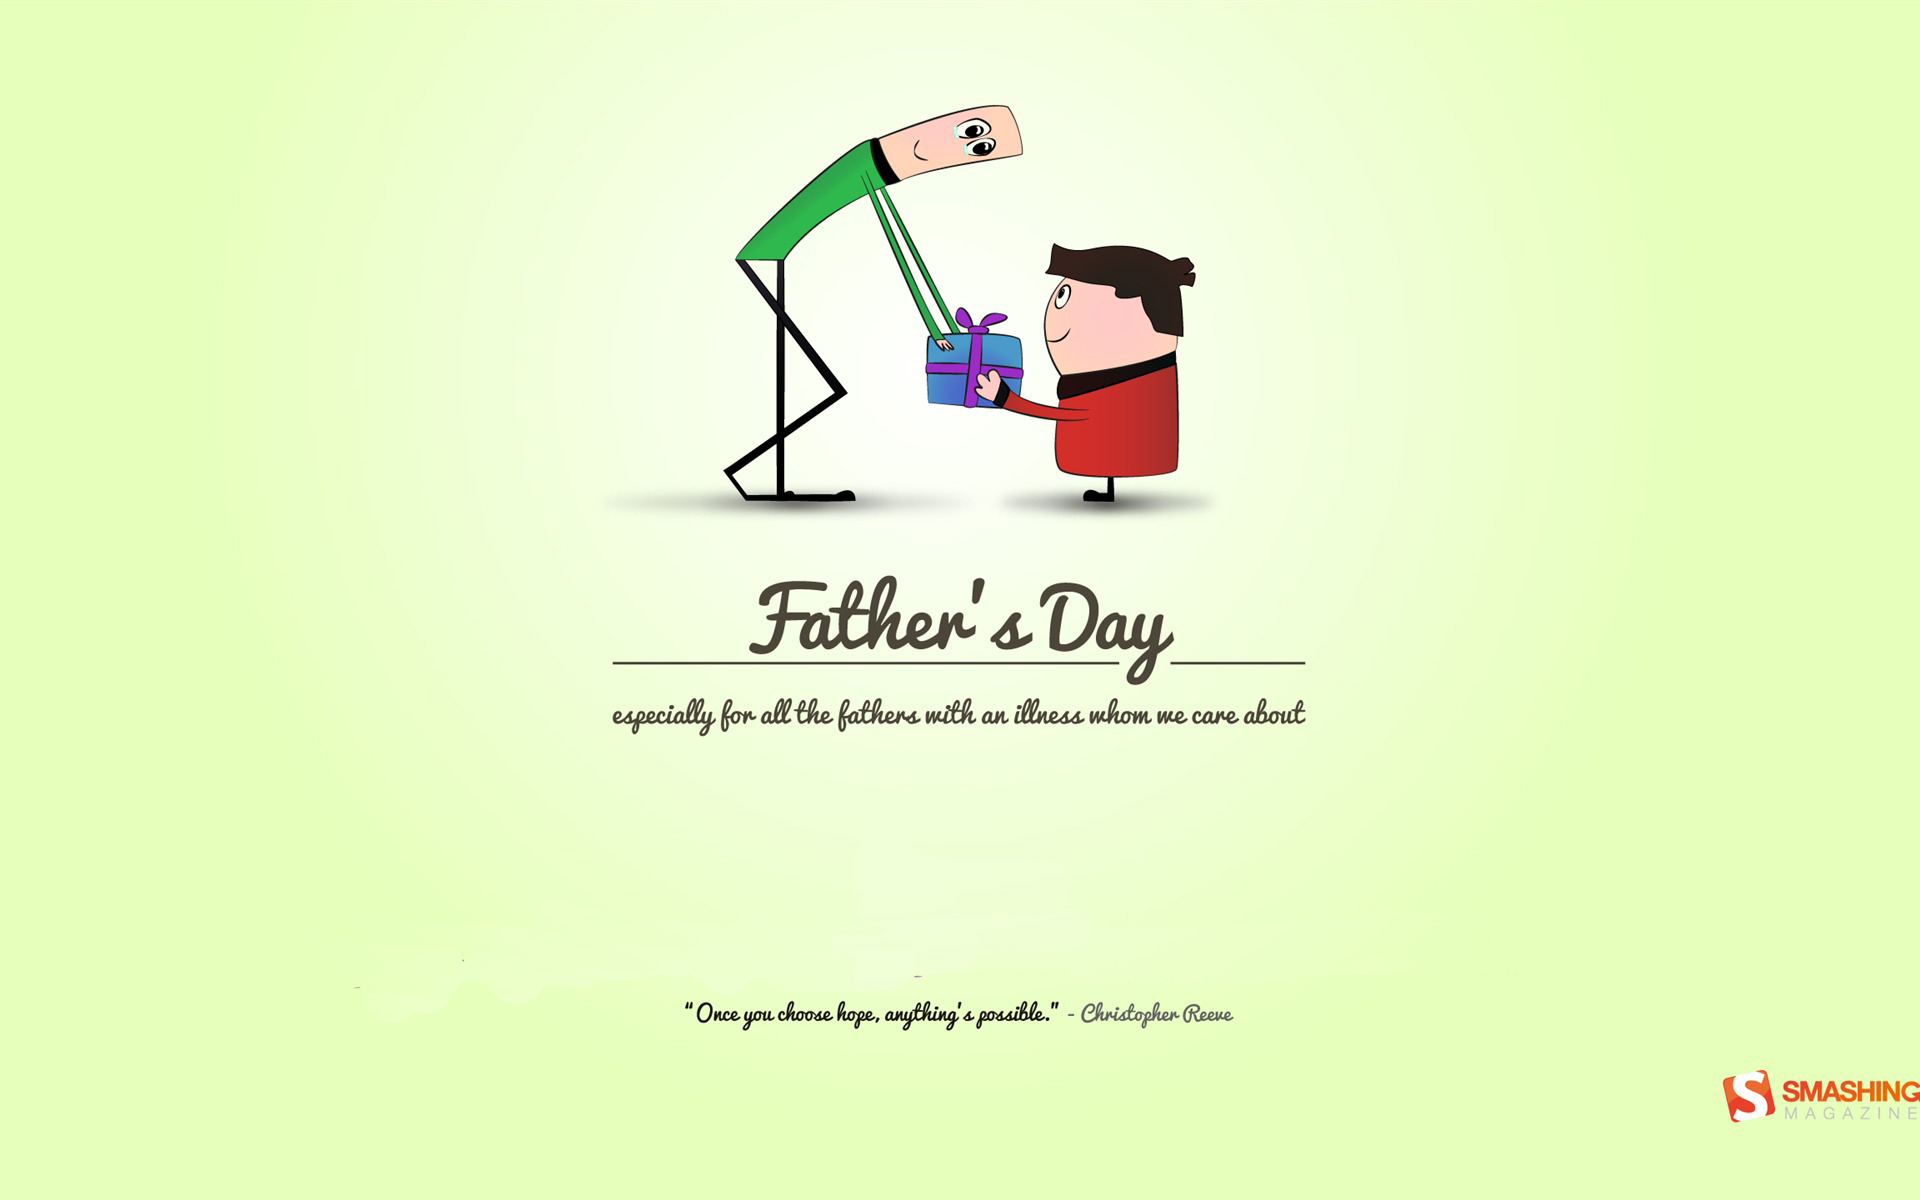 Never Lose Hope Fathers Day Wallpaper Free Download